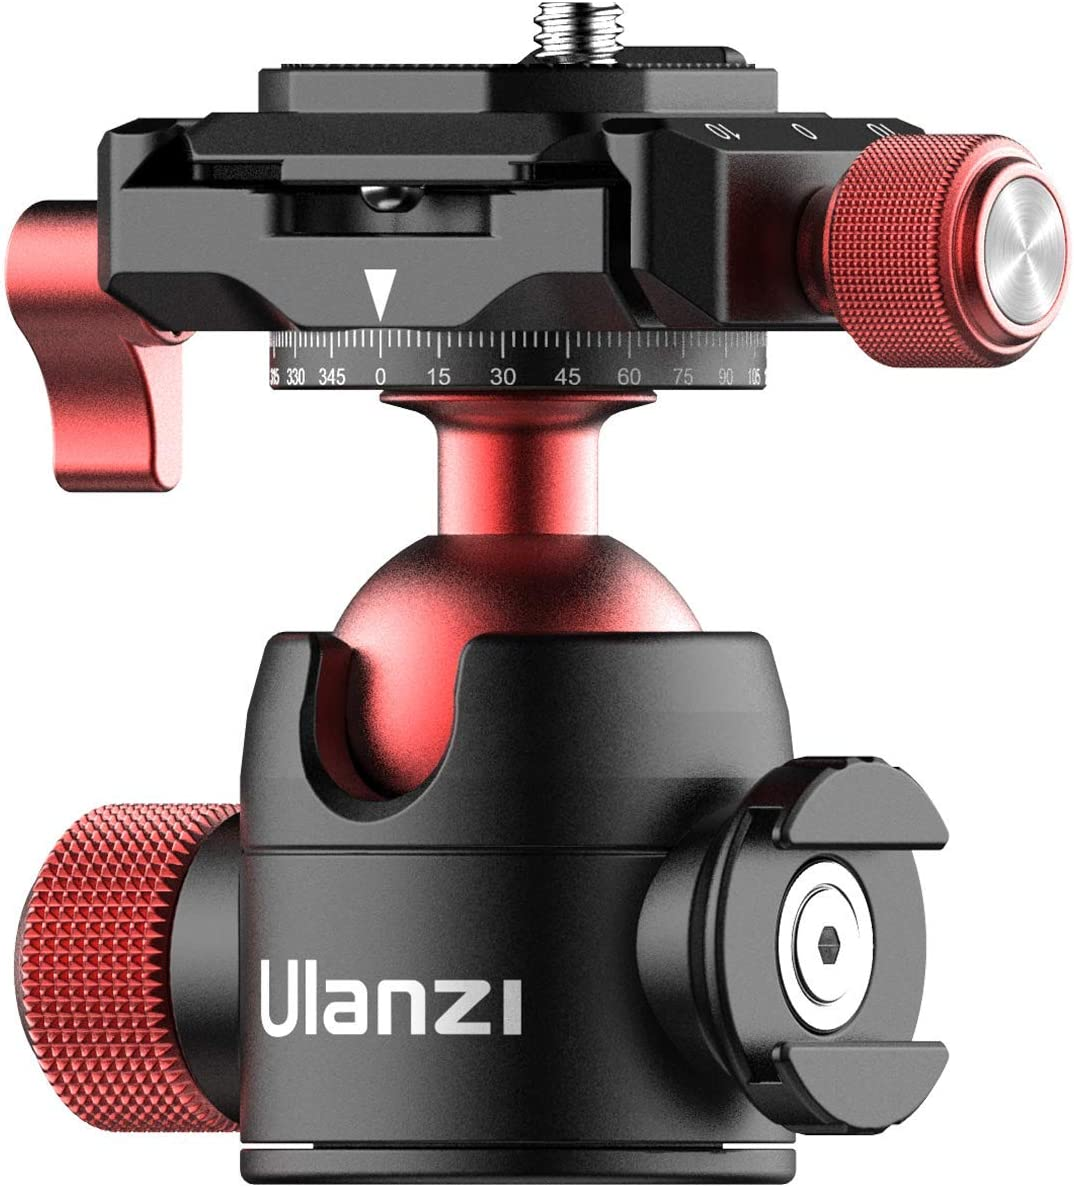 Tripod Head Quick Release Plate ULANZI U-70 Professional Metal 360° Panoramic Ball Head with Quick Release Plate & Cold Shoe, 44lbs/20kg Load, for Tripod, Monopod, Slider, DSLR, Camera, Camcorder : Camera & Photo